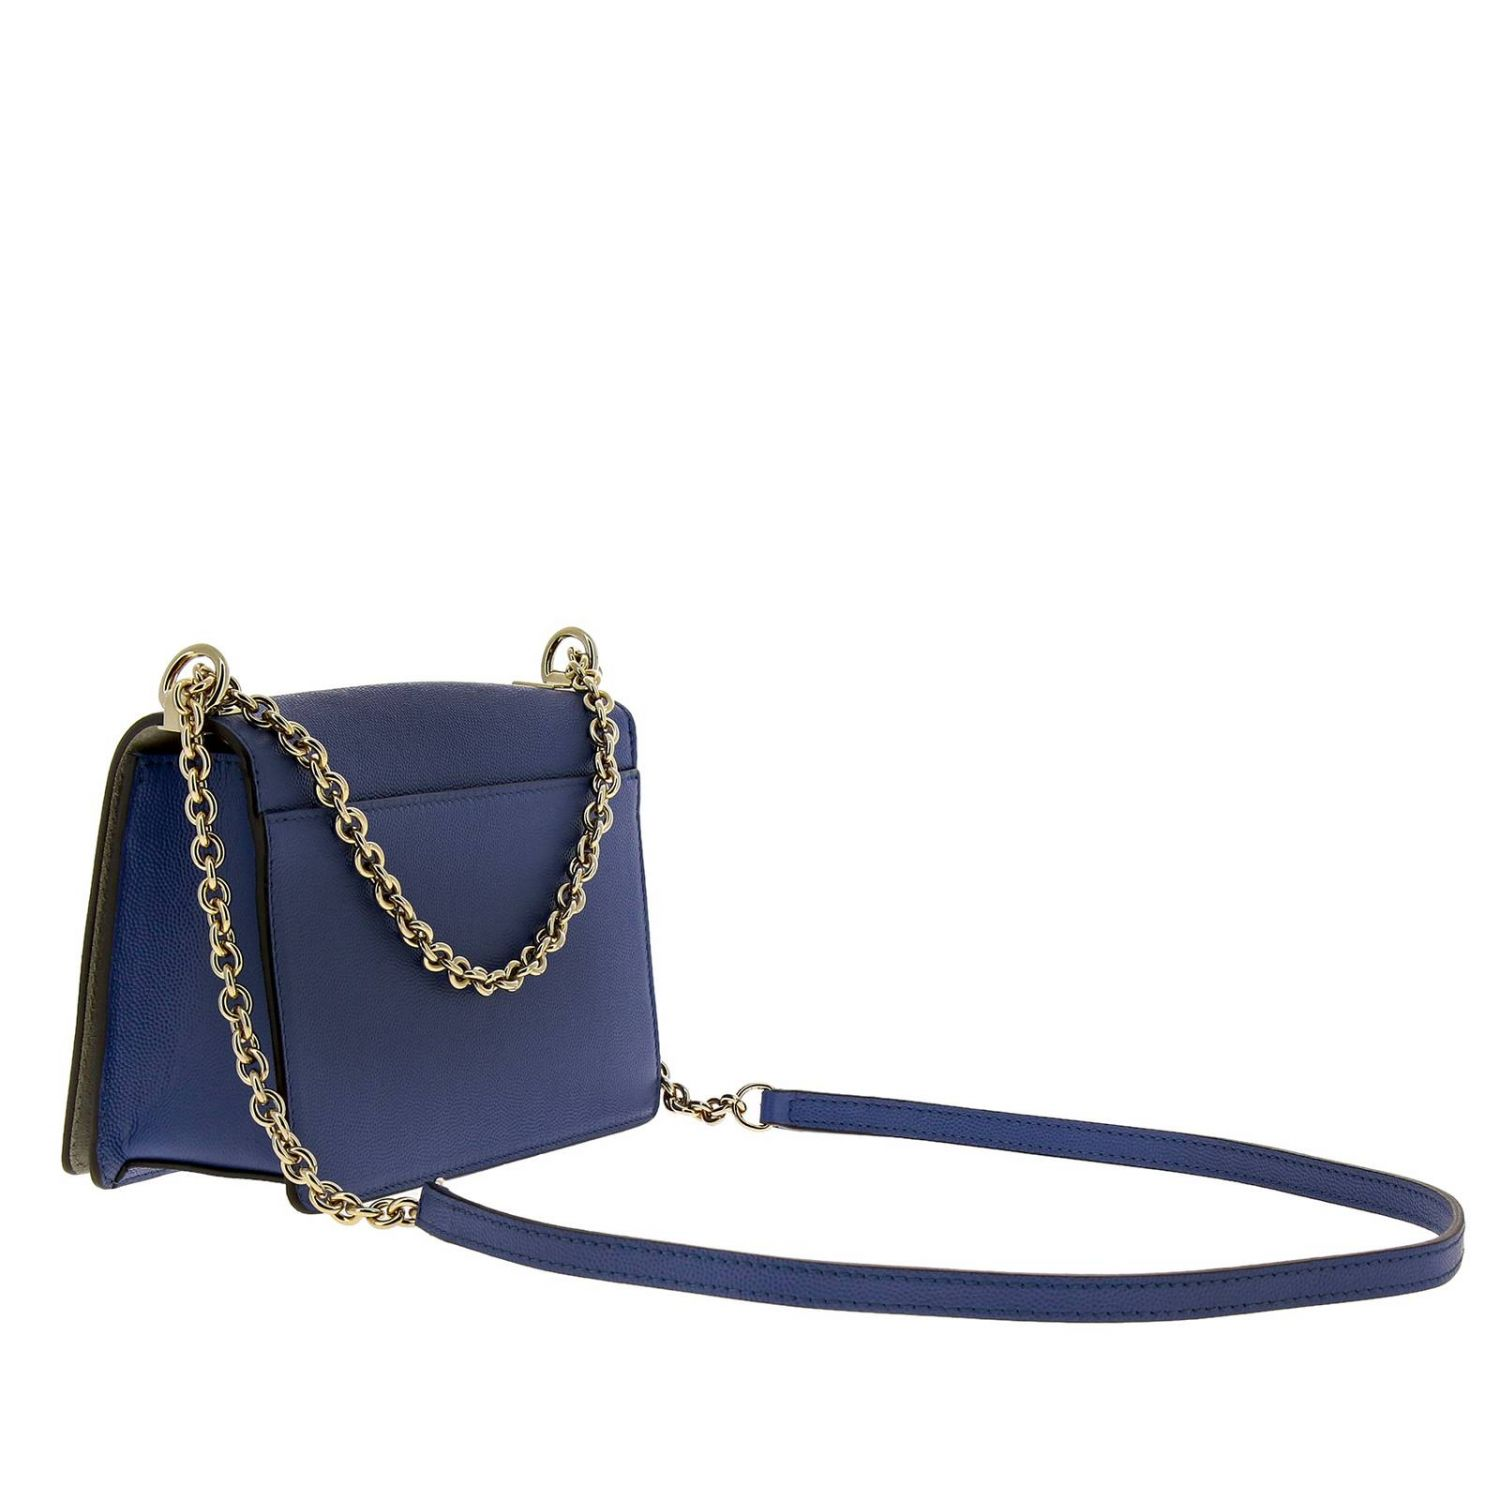 Mini bag Furla: Mimì Furla mini bag in textured leather with shoulder strap periwinkle 3